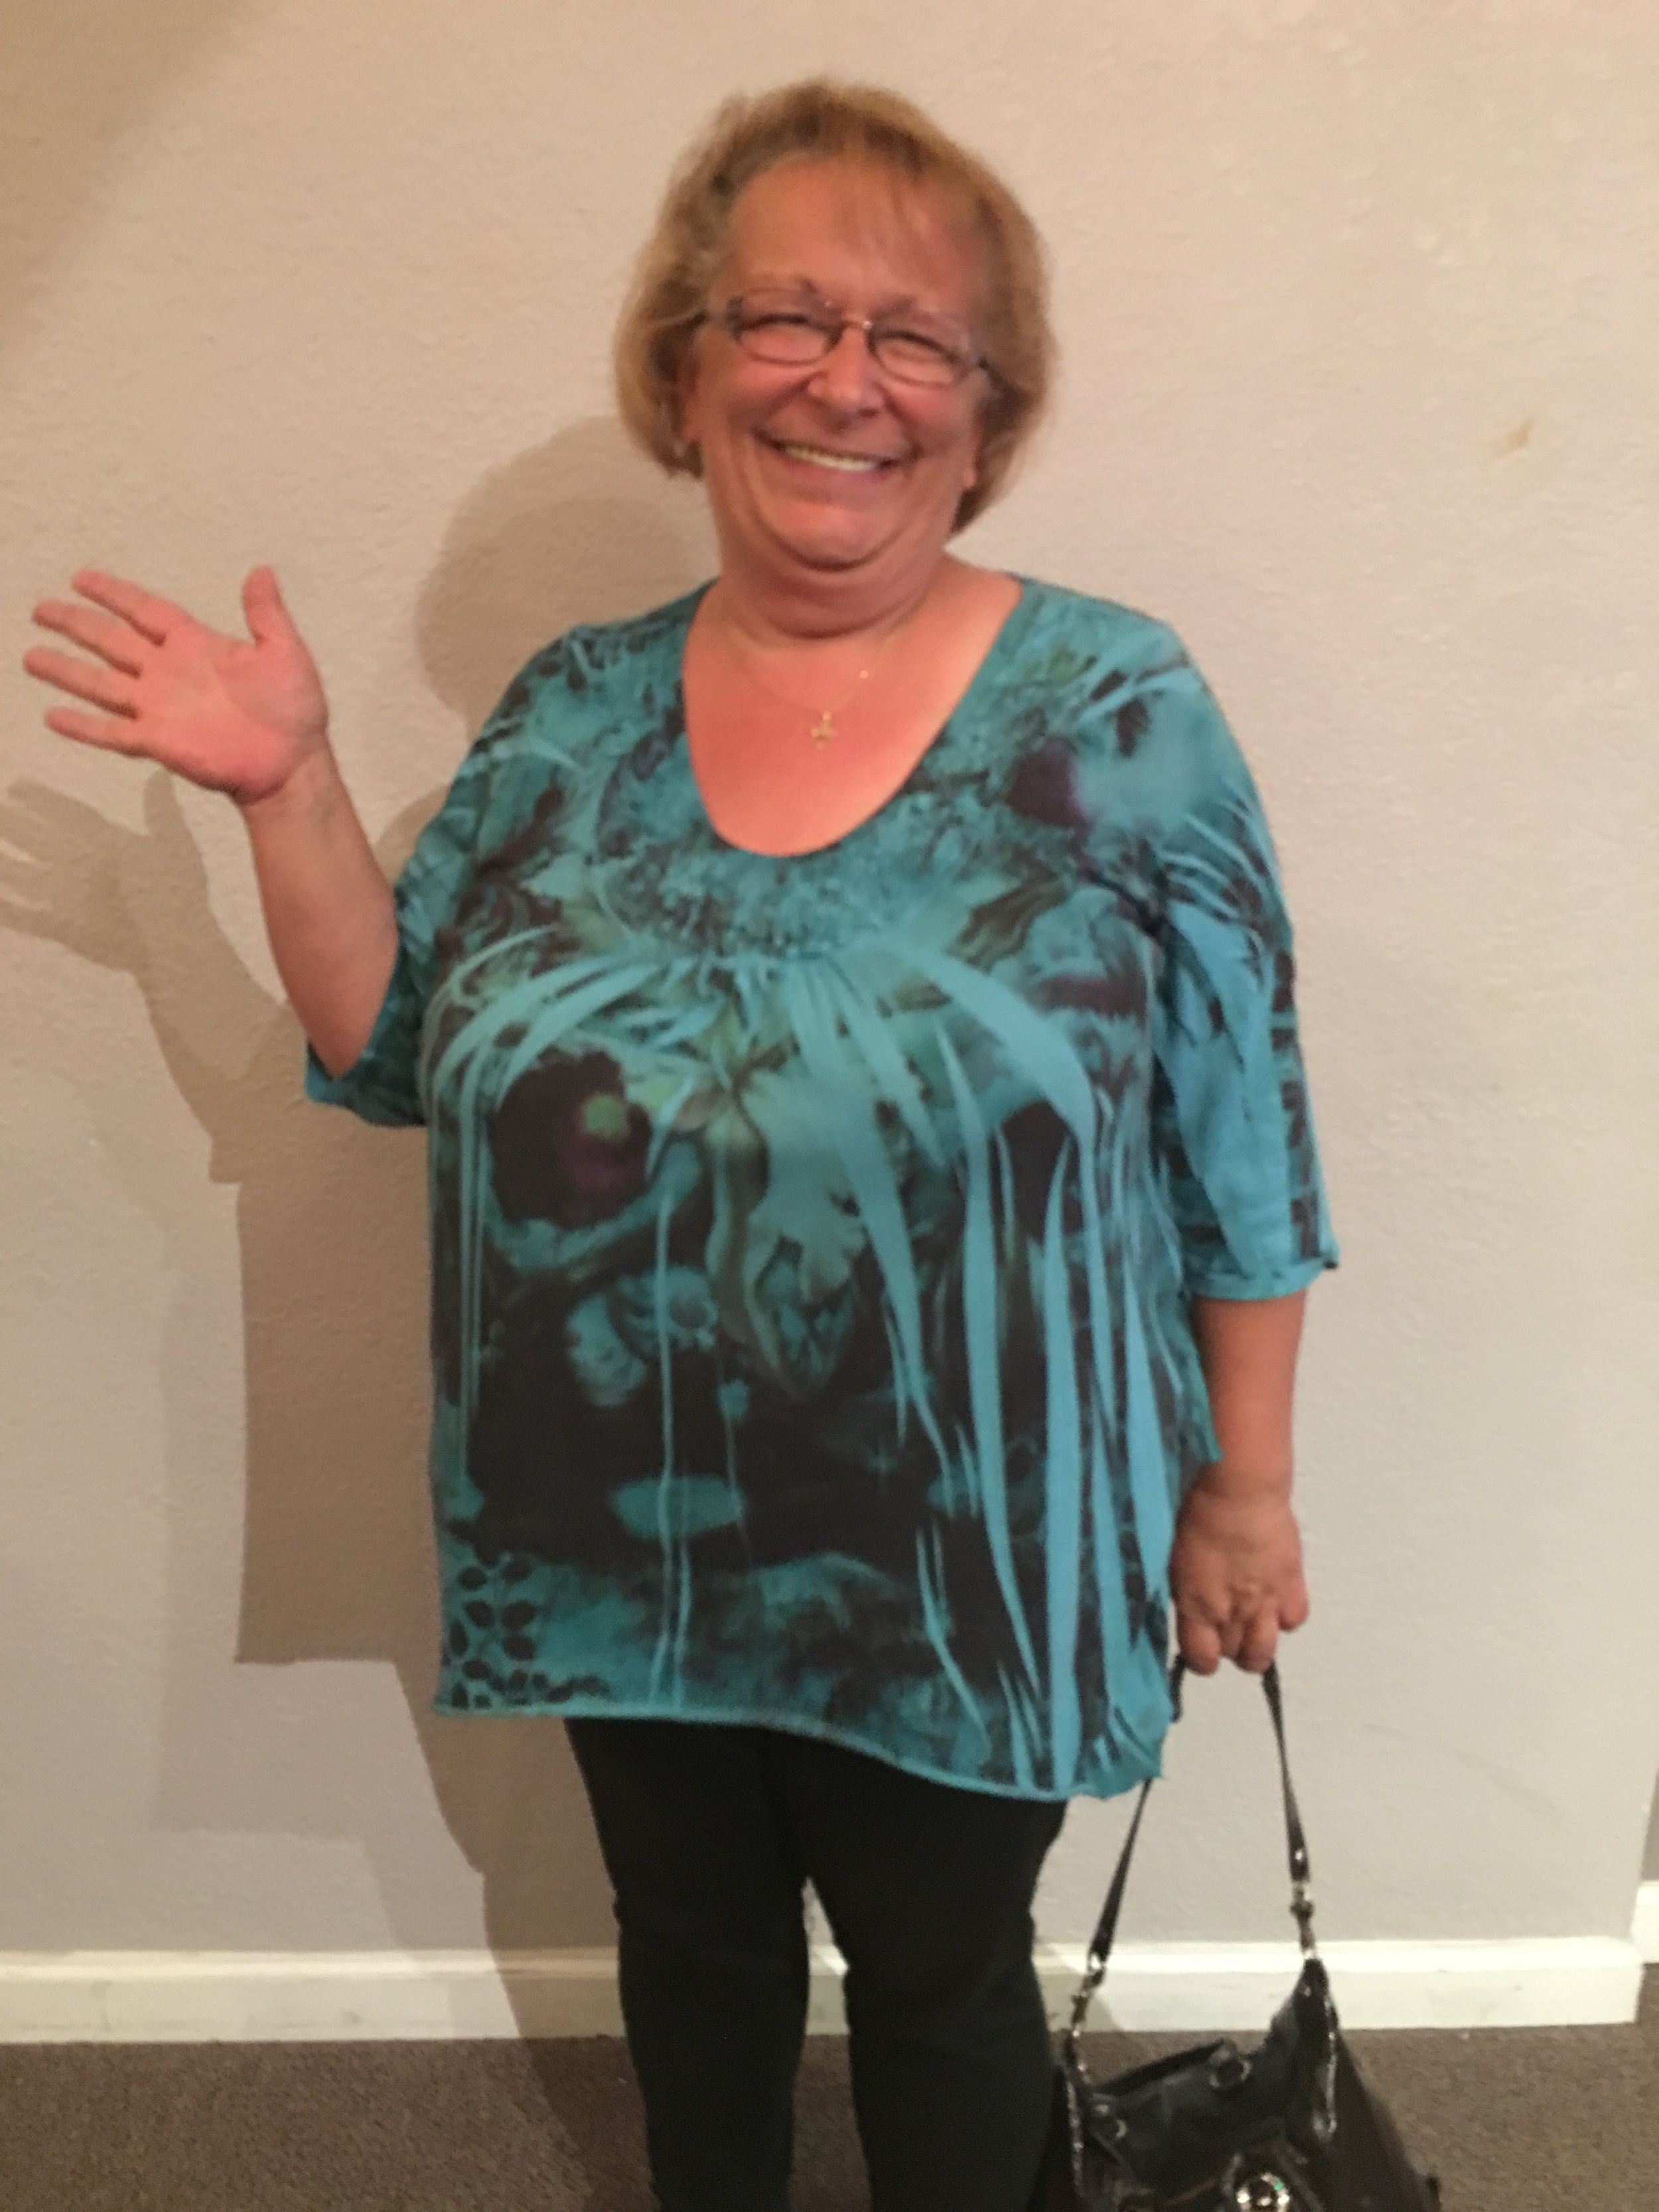 HEALED FROM BACK PAIN AND NERVE DAMAGE